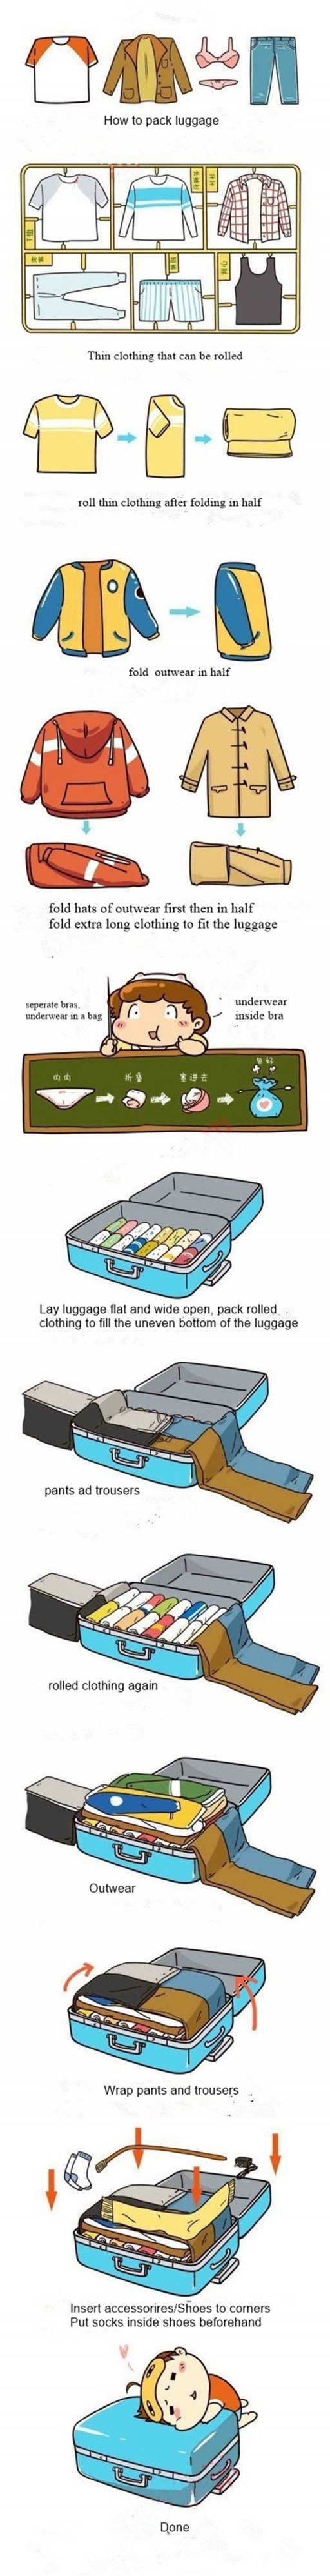 How to pack luggage more efficiently step by step DIY tutorial instructions 2